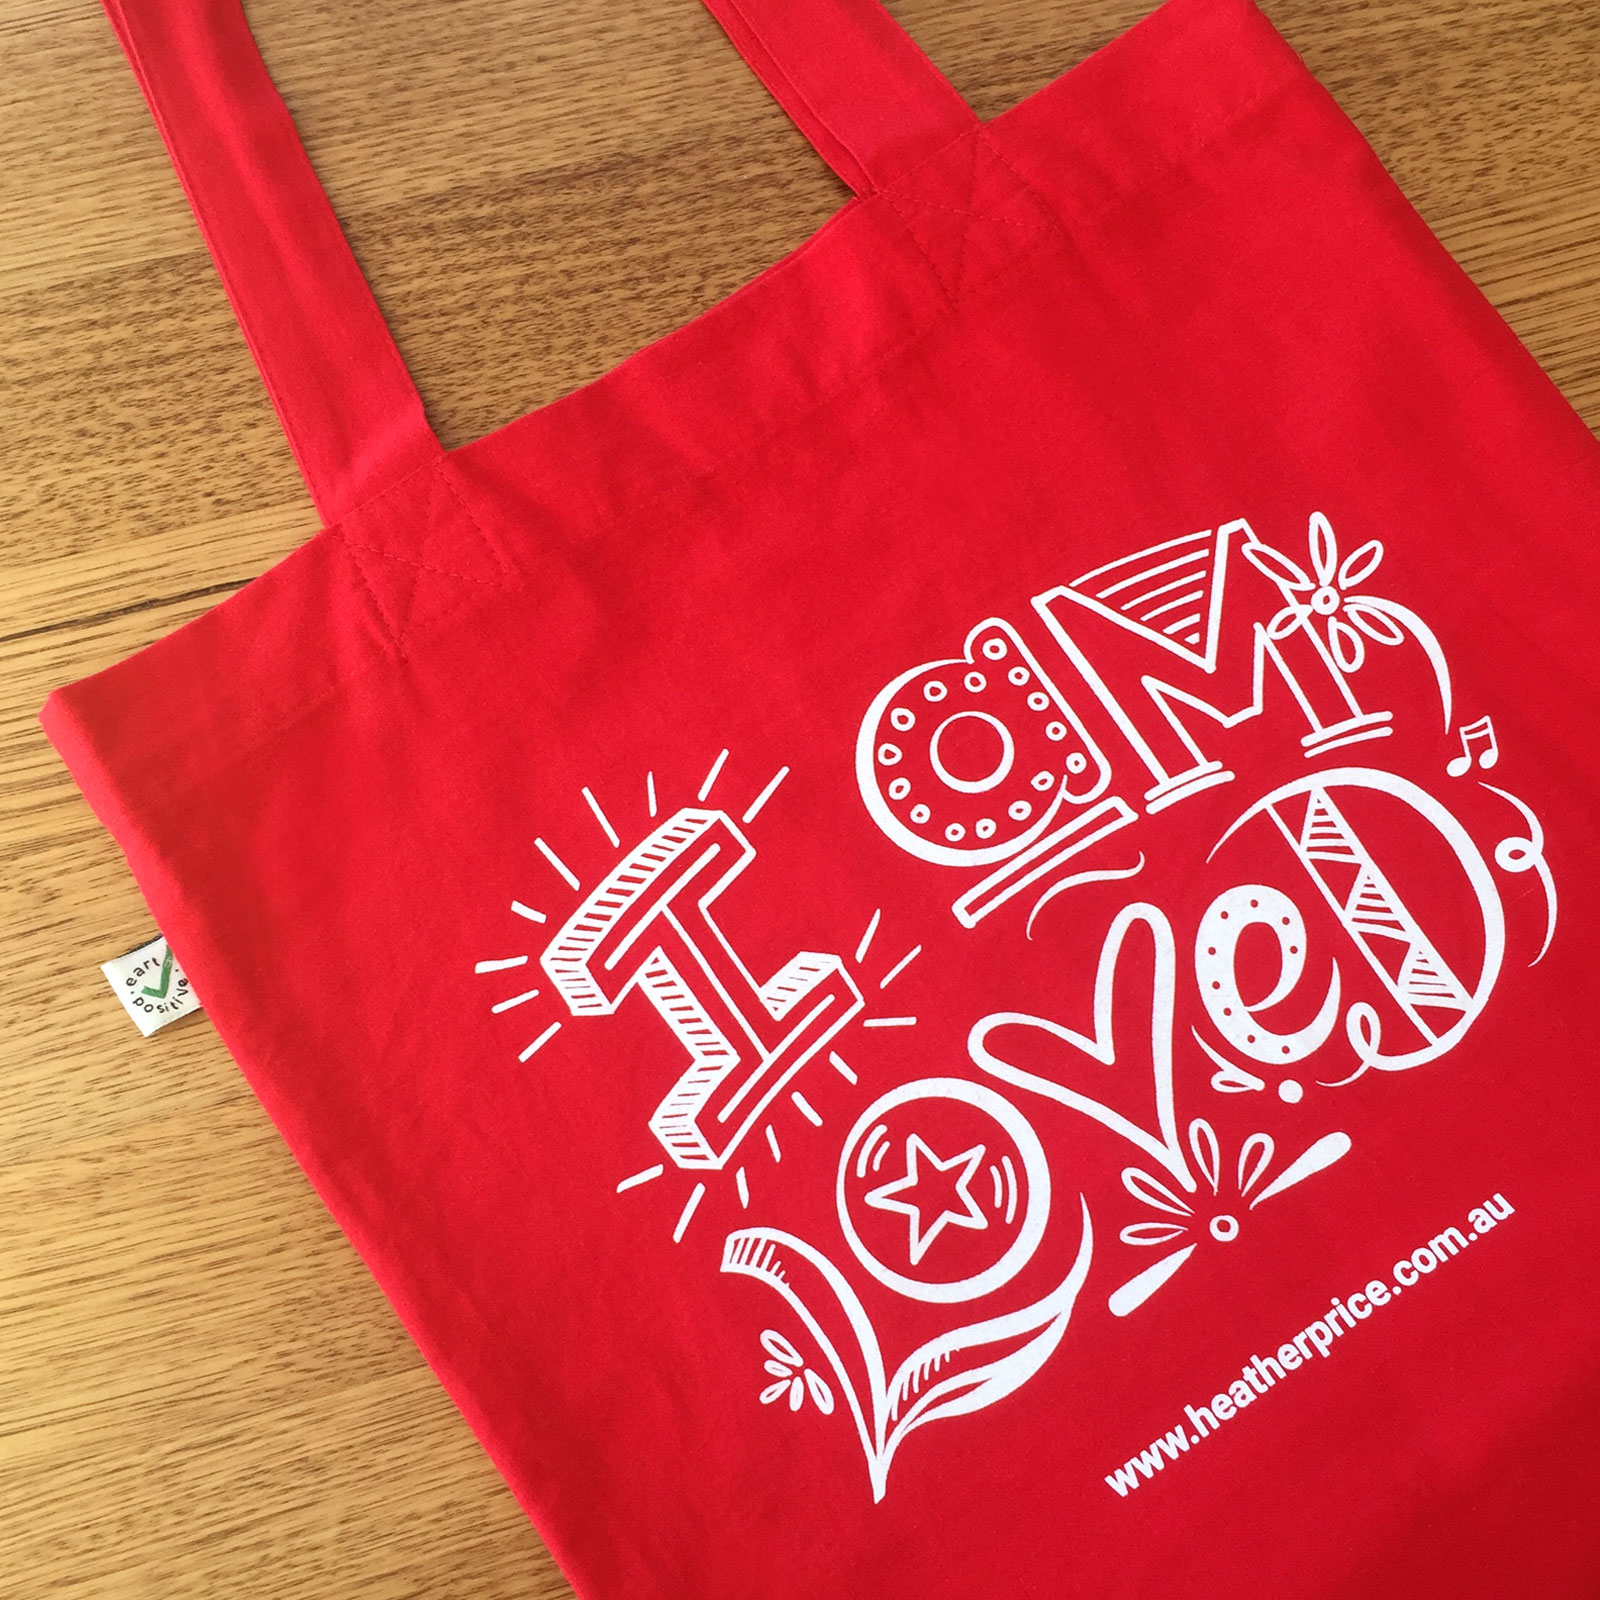 Screen printed album design tote bag with 'I am Loved' text design